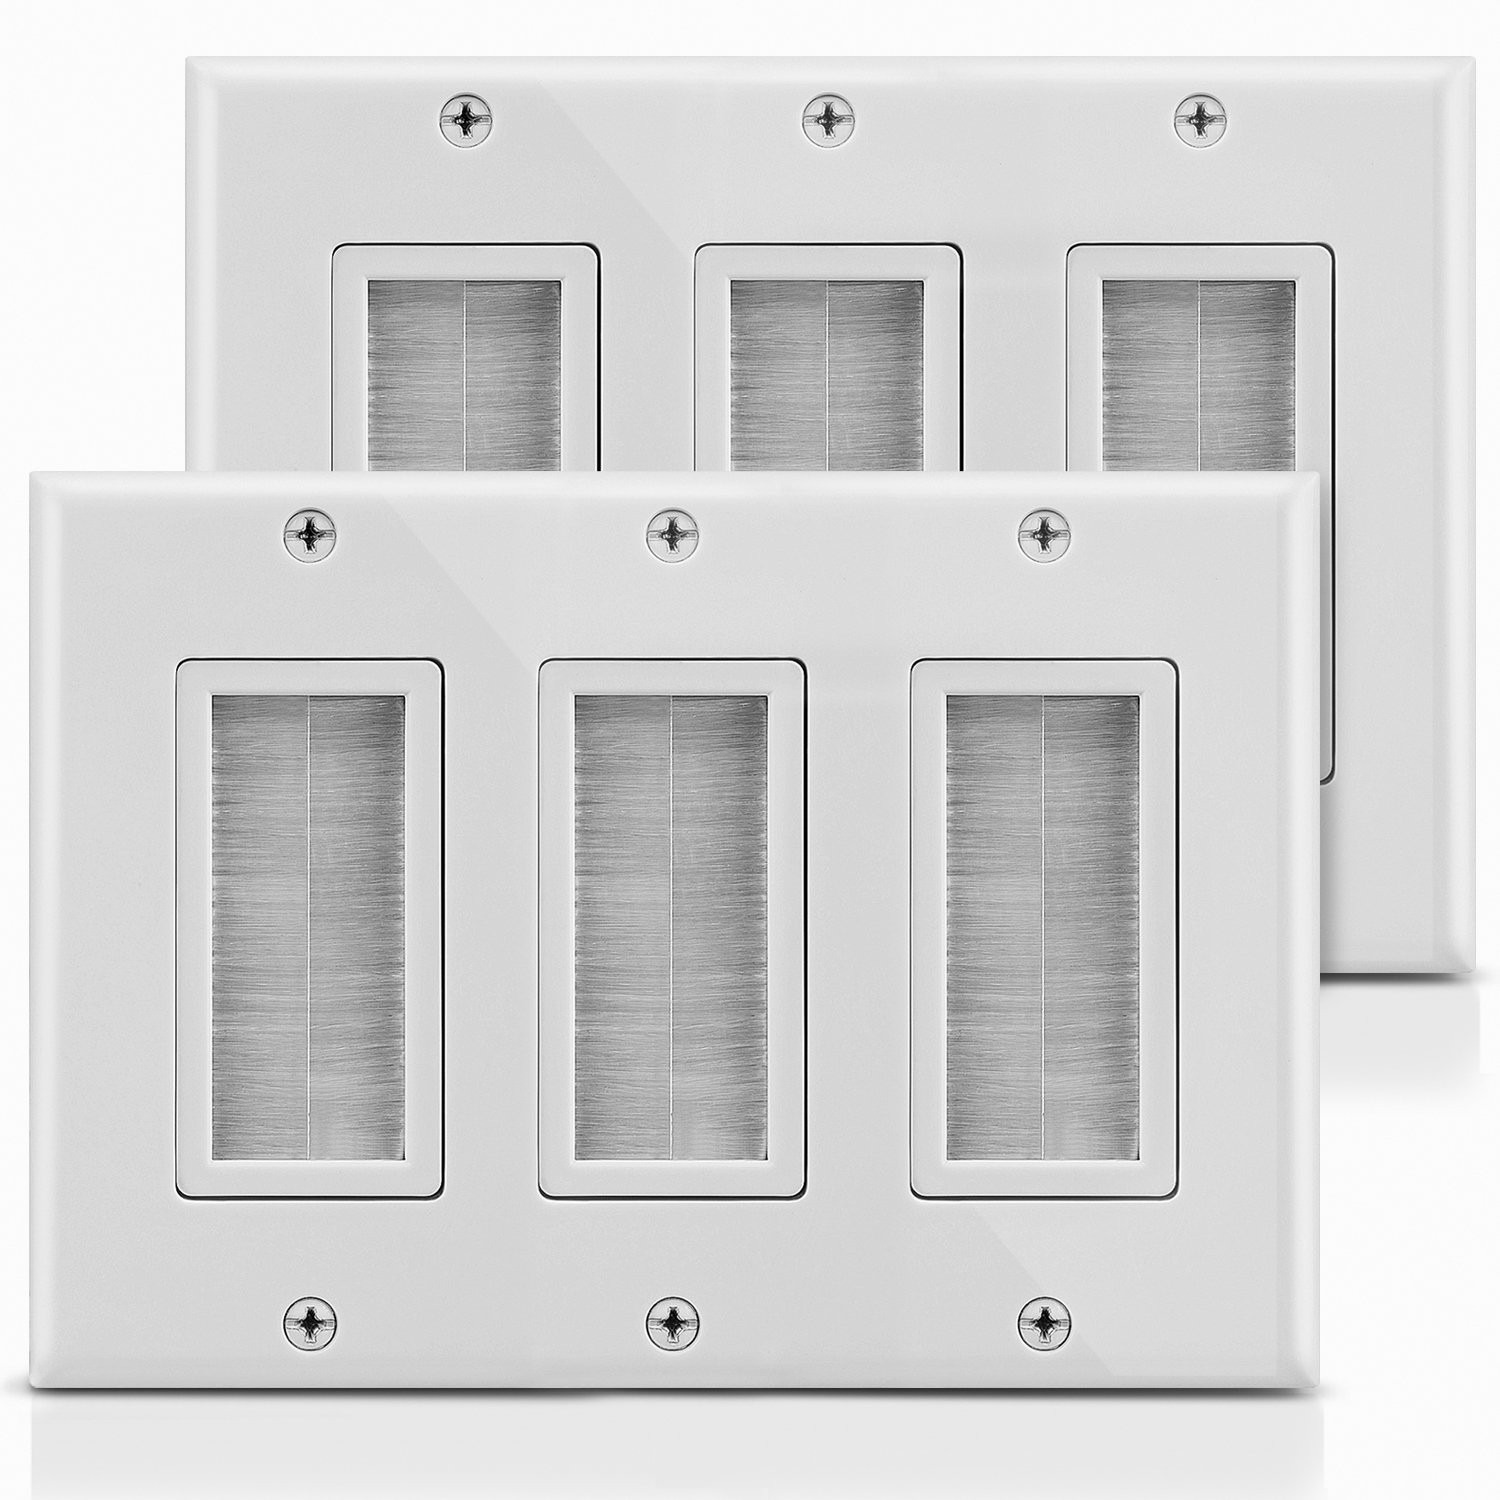 Fosmon 3-Gang Wall Plate (2 PACK), Brush Style Opening Passthrough Low Voltage Cable Plate In-Wall Installation for Speaker Wires, Coaxial Cables, HDMI Cables, or Network/Phone Cables